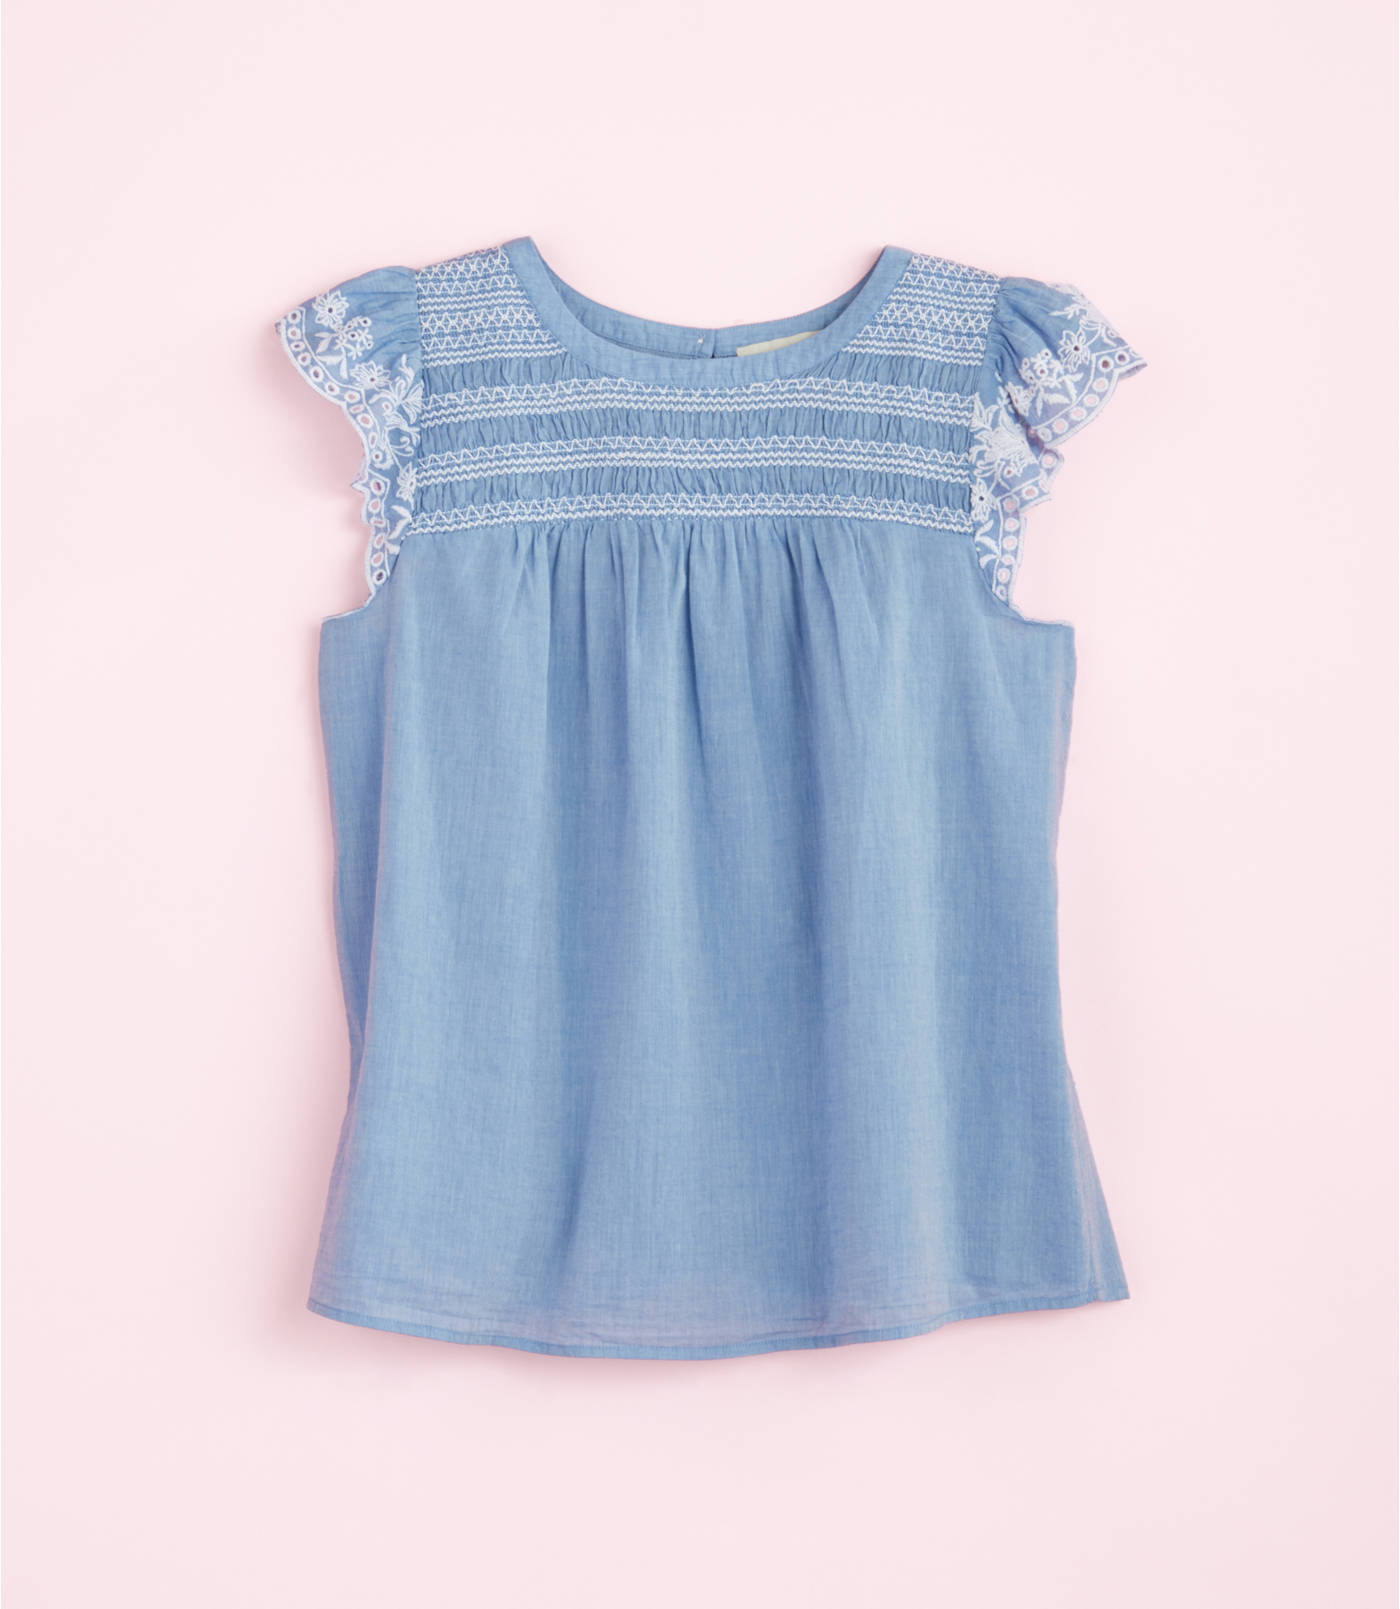 Embroidered Ruffle Sleeve Top- ONLY , Regularly .50! SHOP Loft! See code!